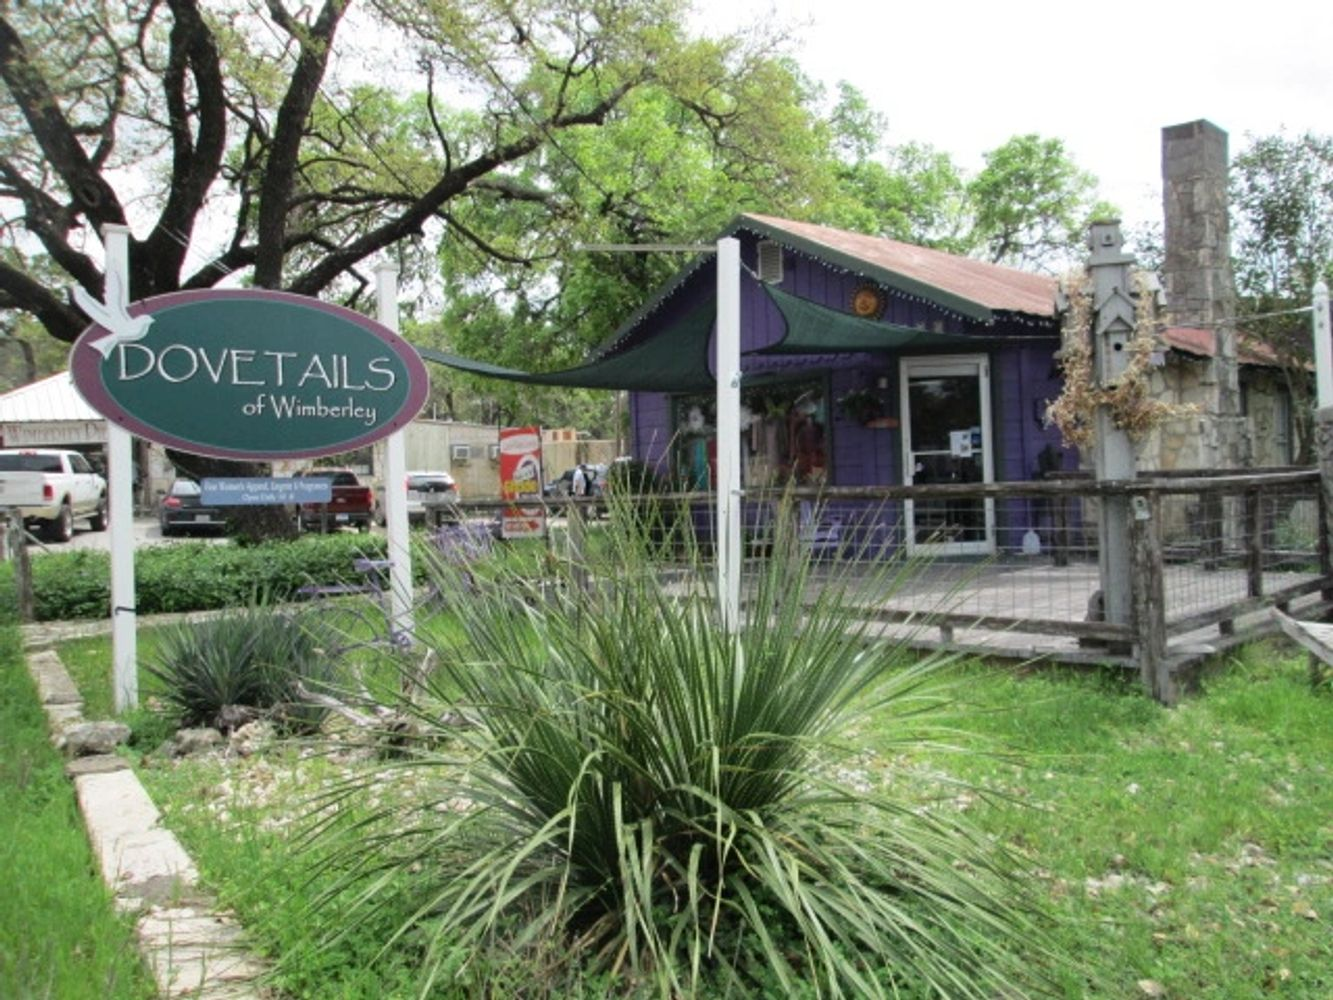 The purple house with the green canopy 1 block south of the Square in beautiful Wimberley, Texas.